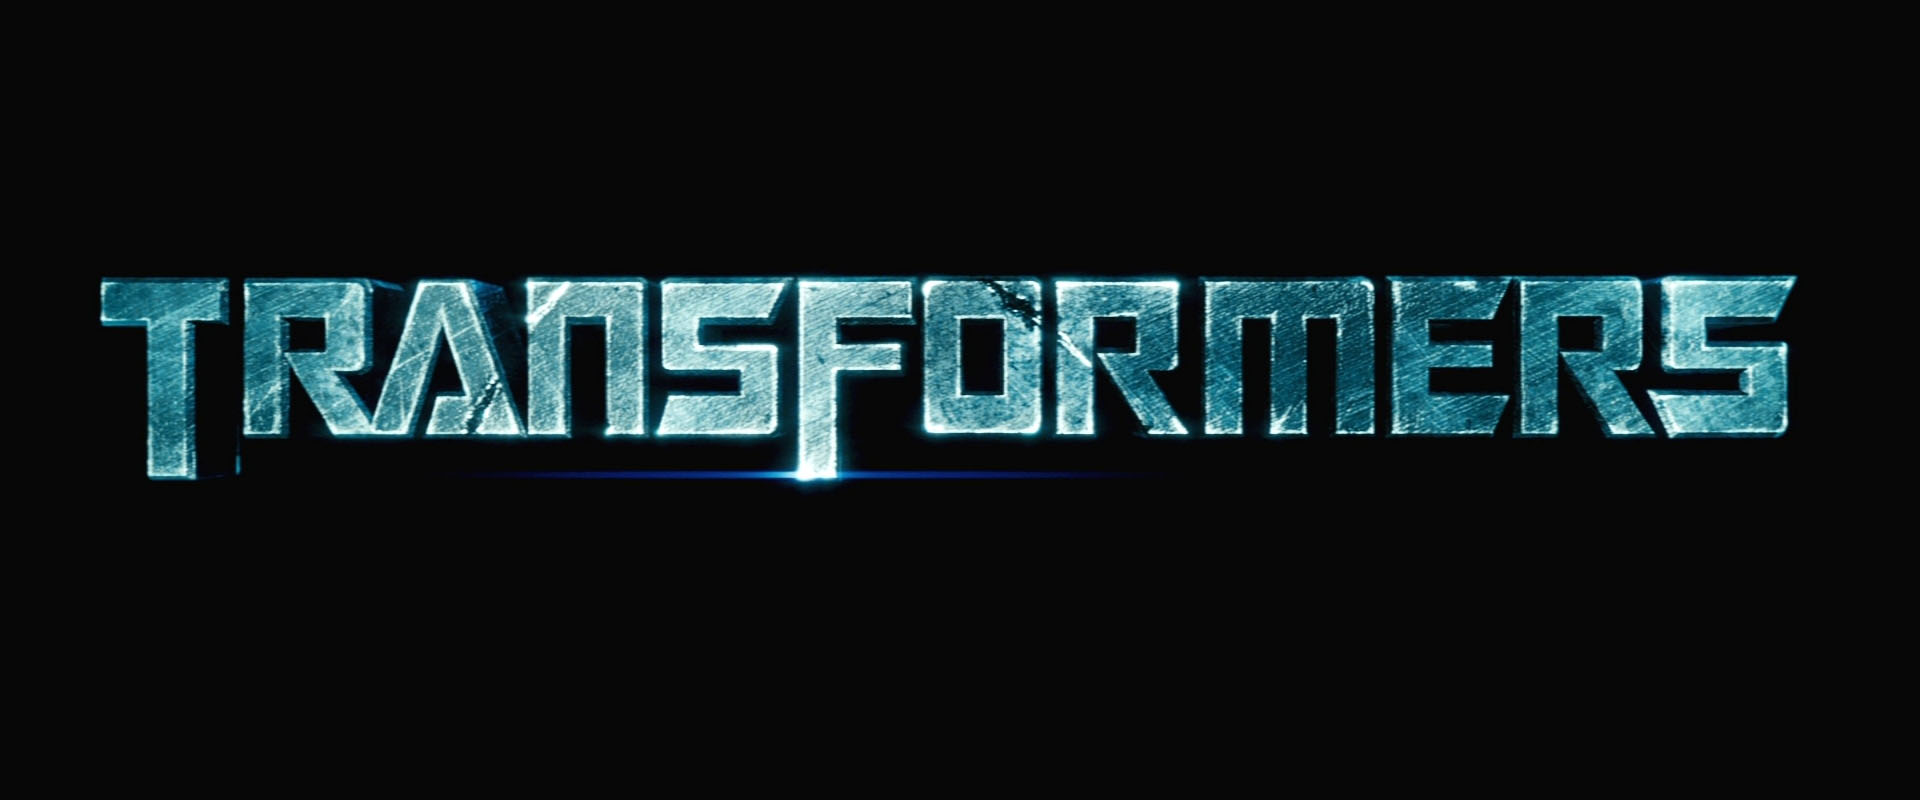 9.transformers